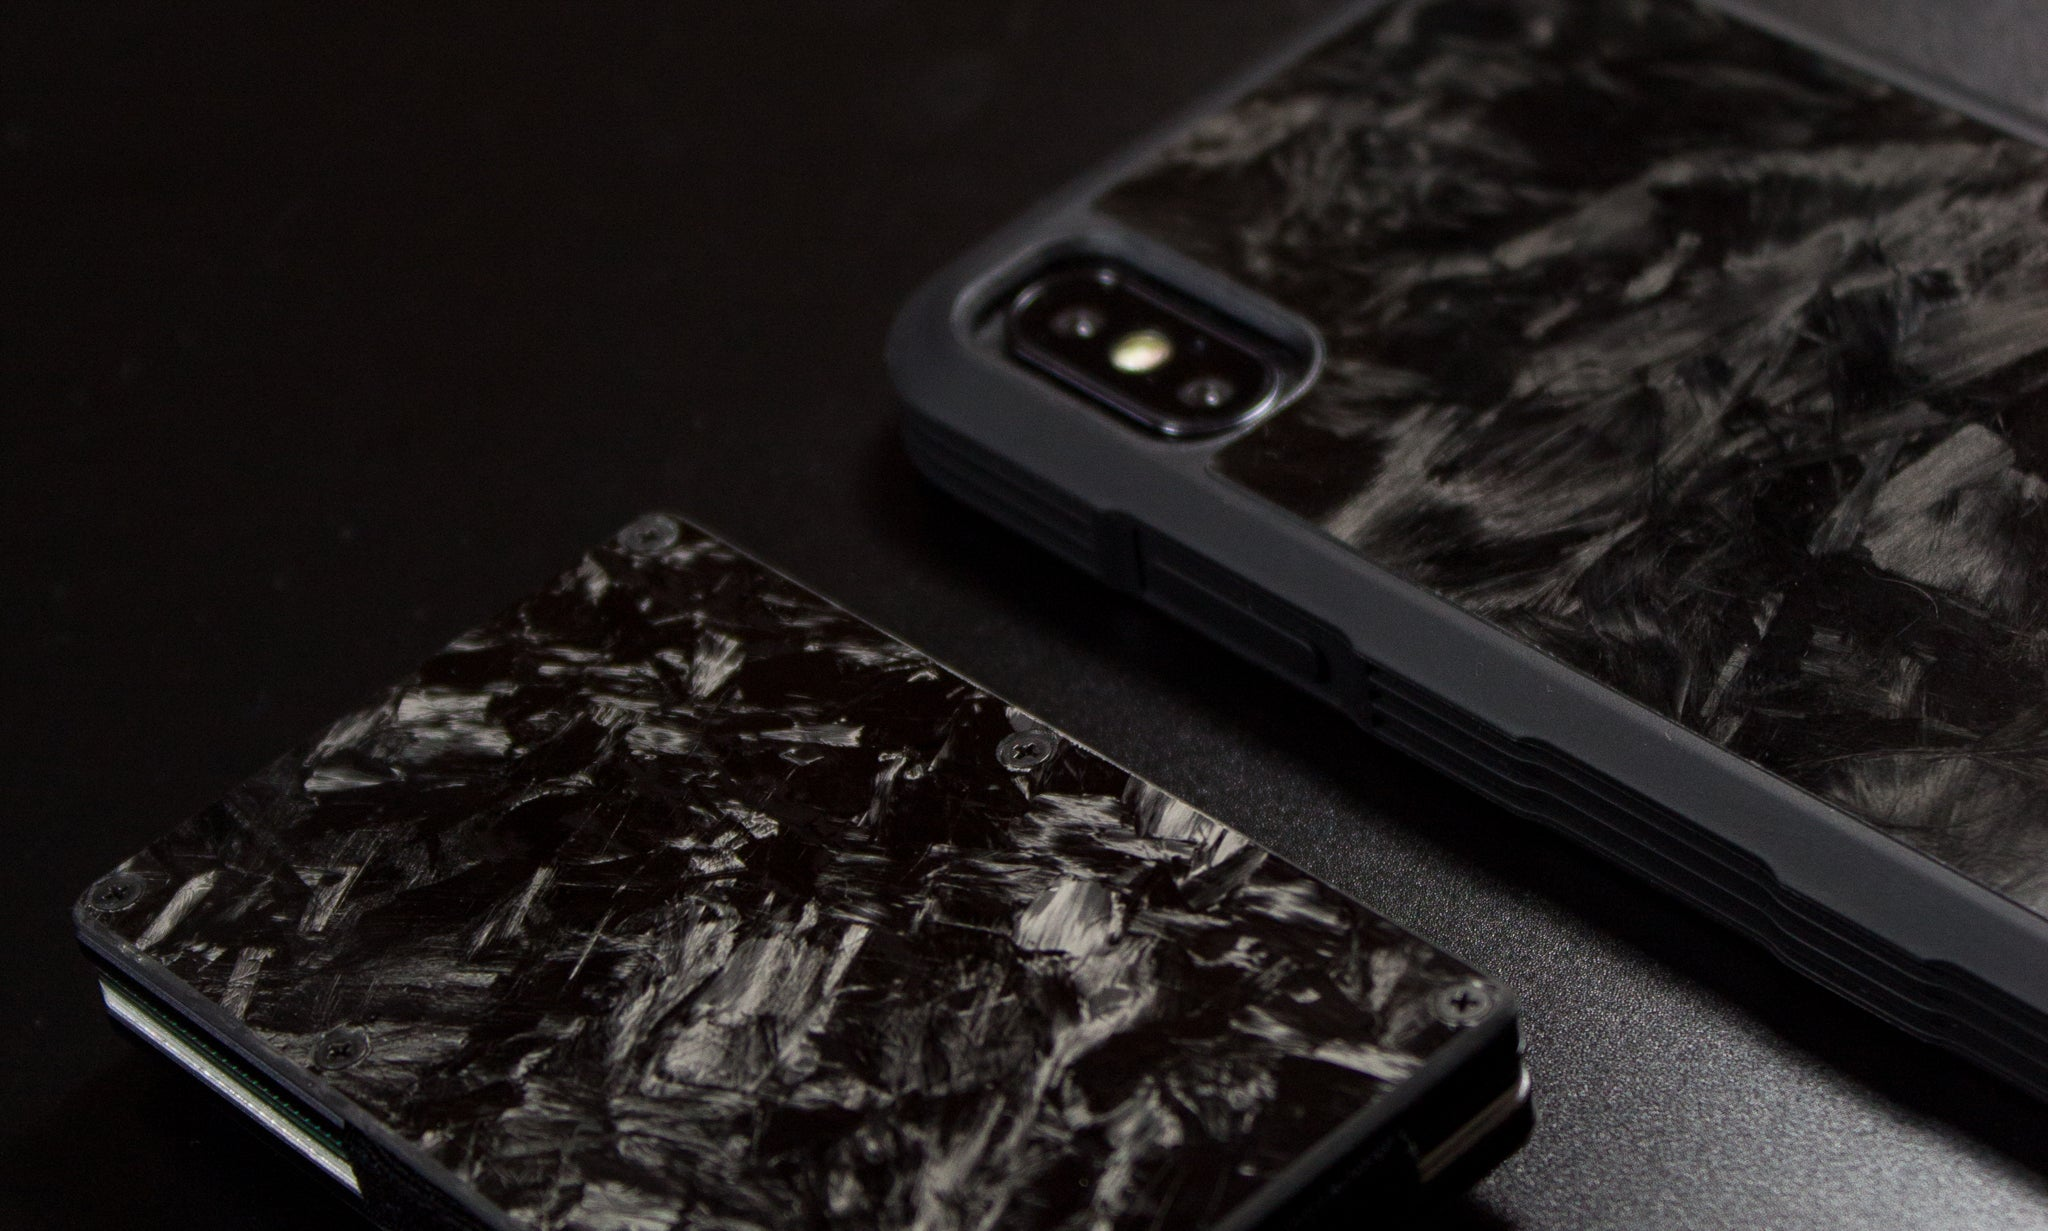 Forged Carbon Fibre Cardholder and iPhone X Forged Carbon Fibre Case